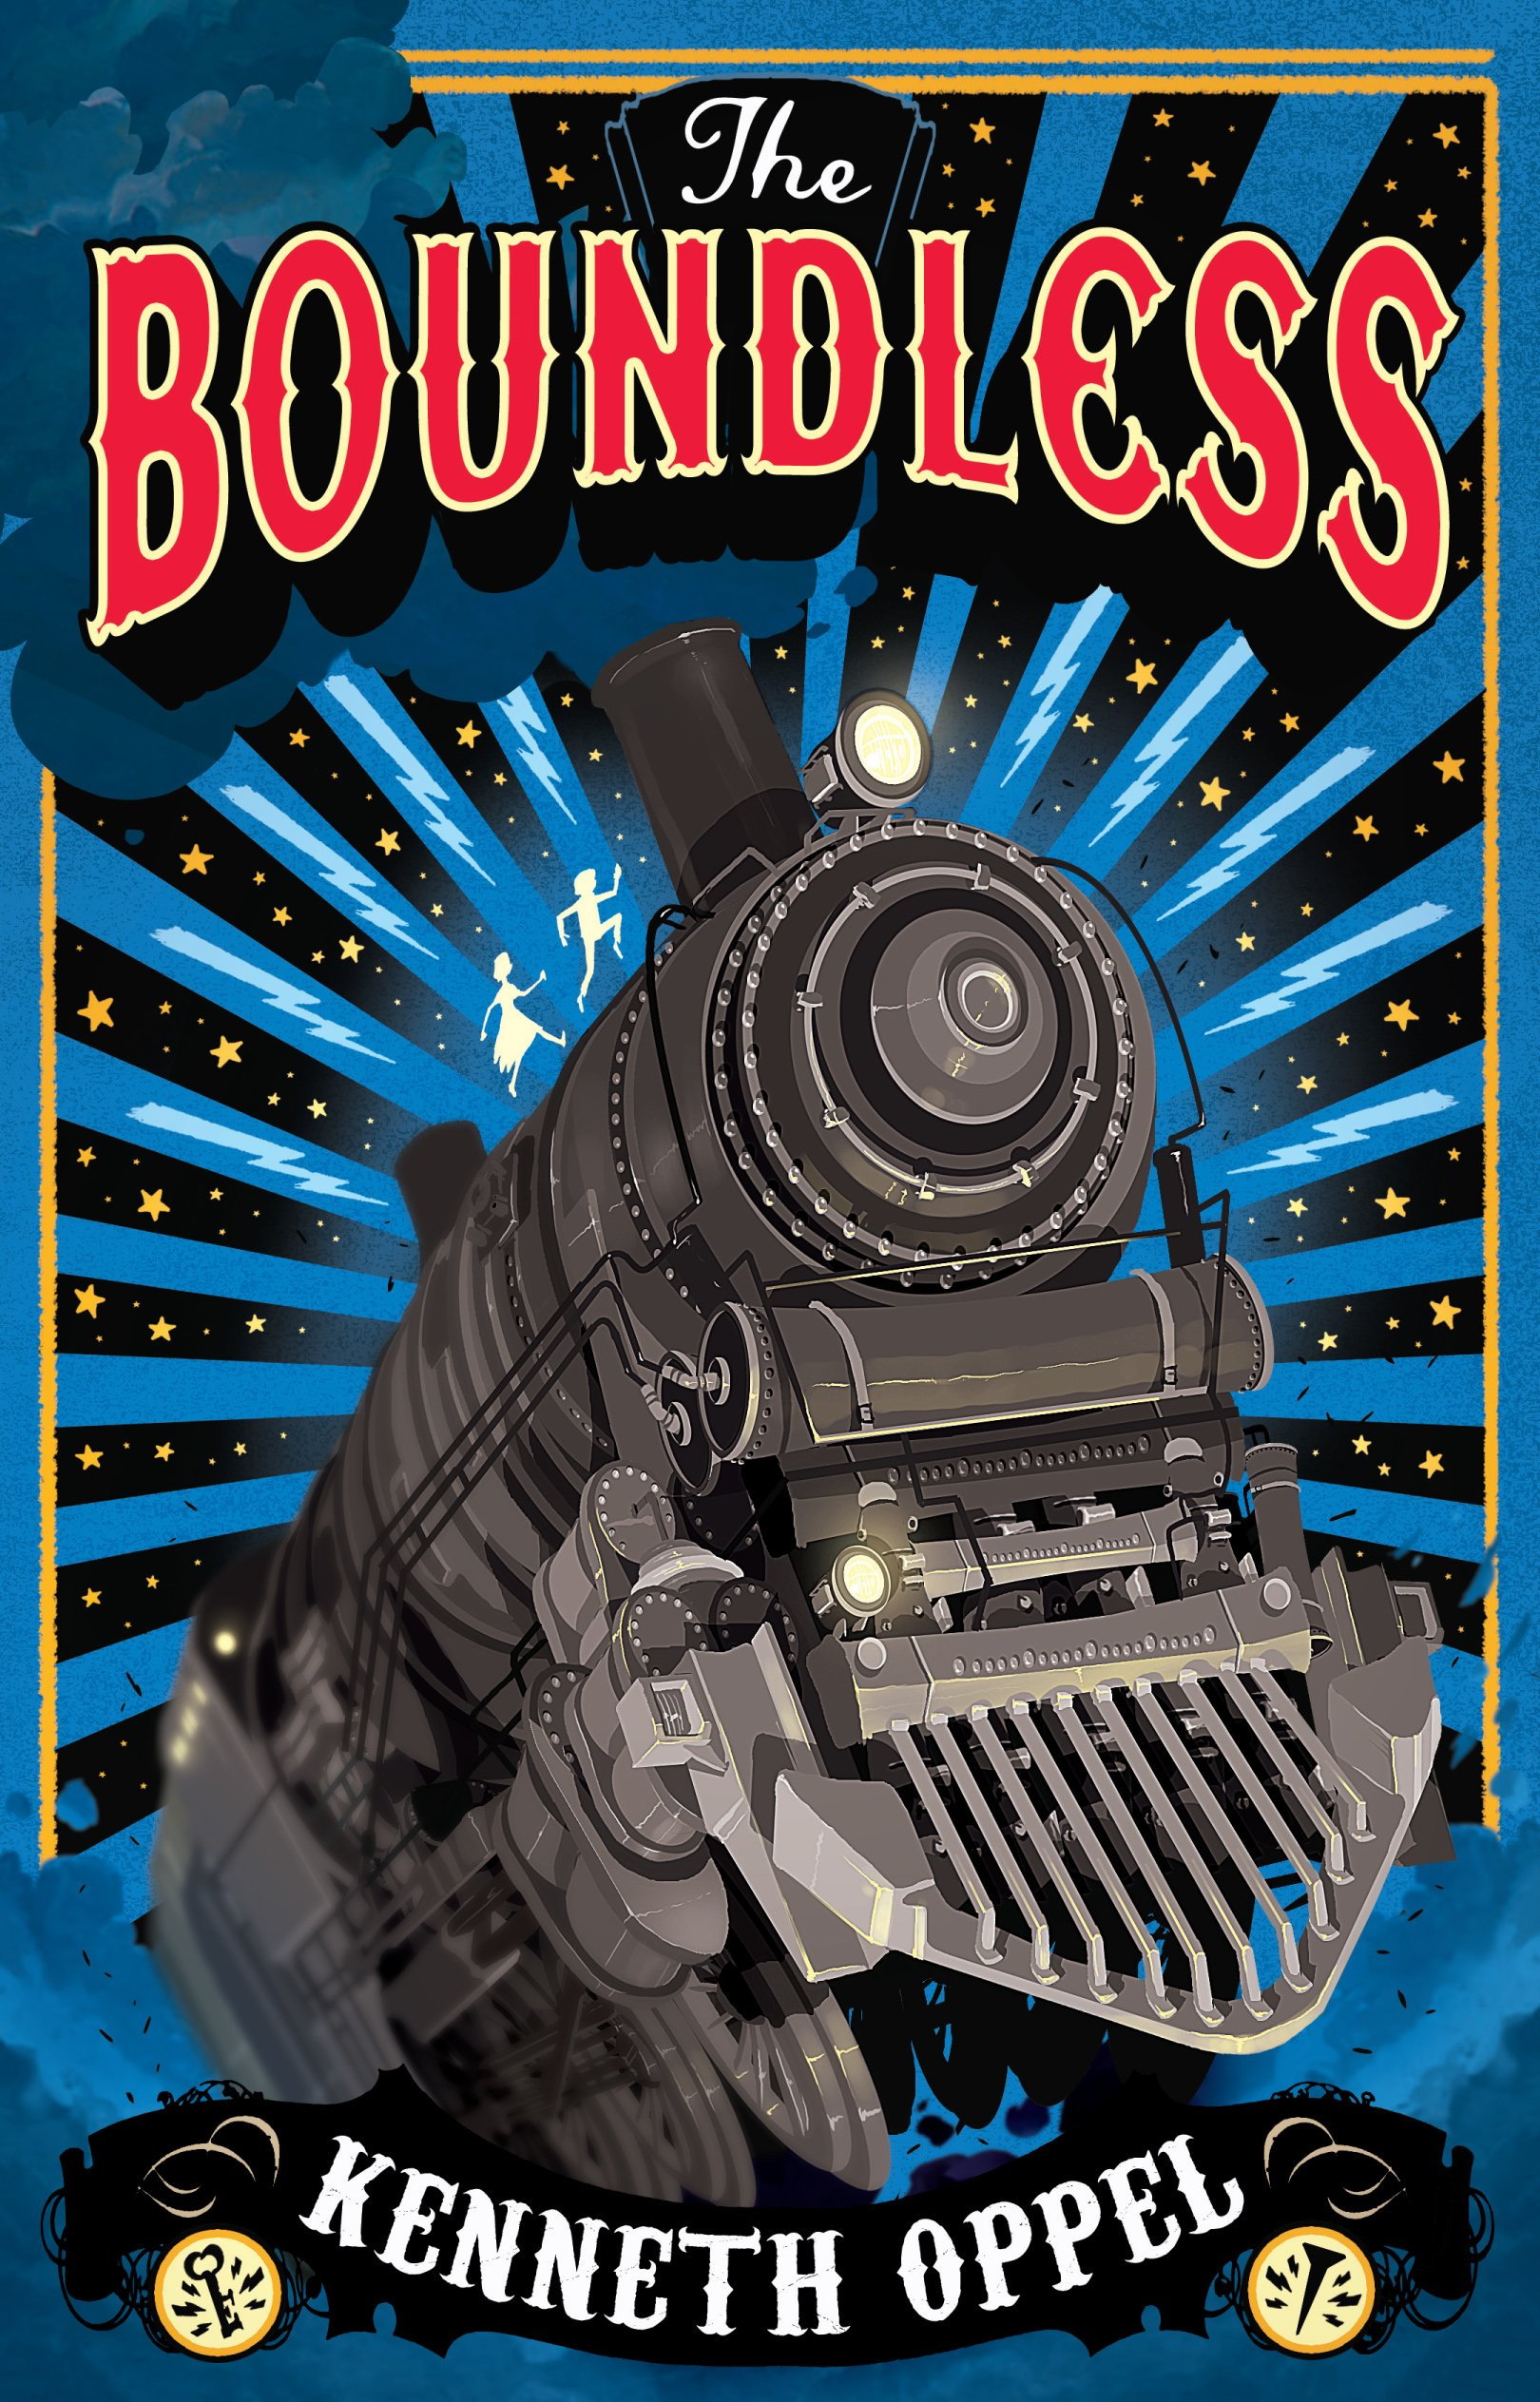 The Boundless – Kenneth Oppel